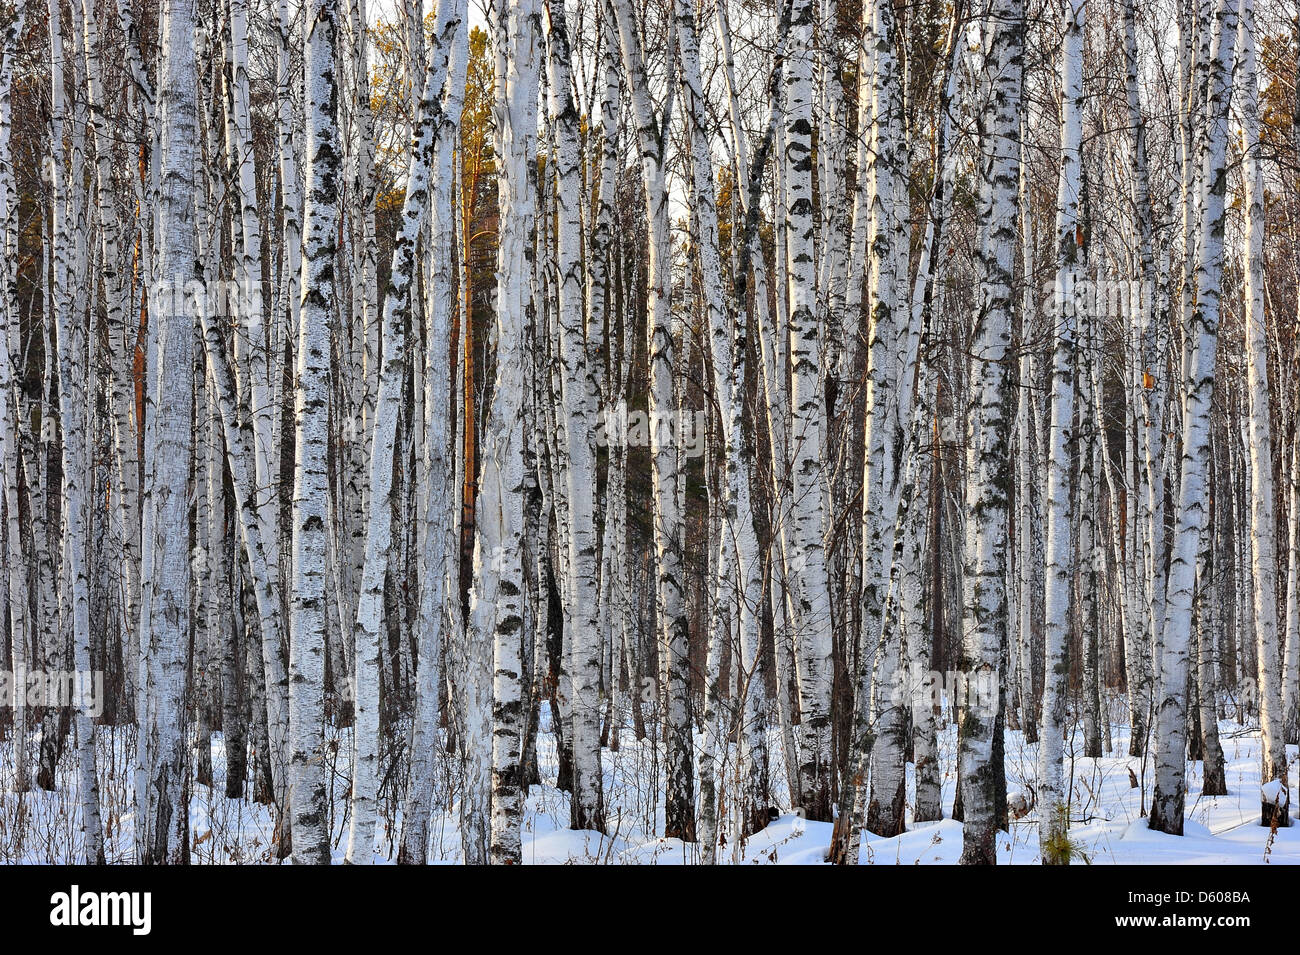 Winter wood with growing birches, pines, a bush. - Stock Image